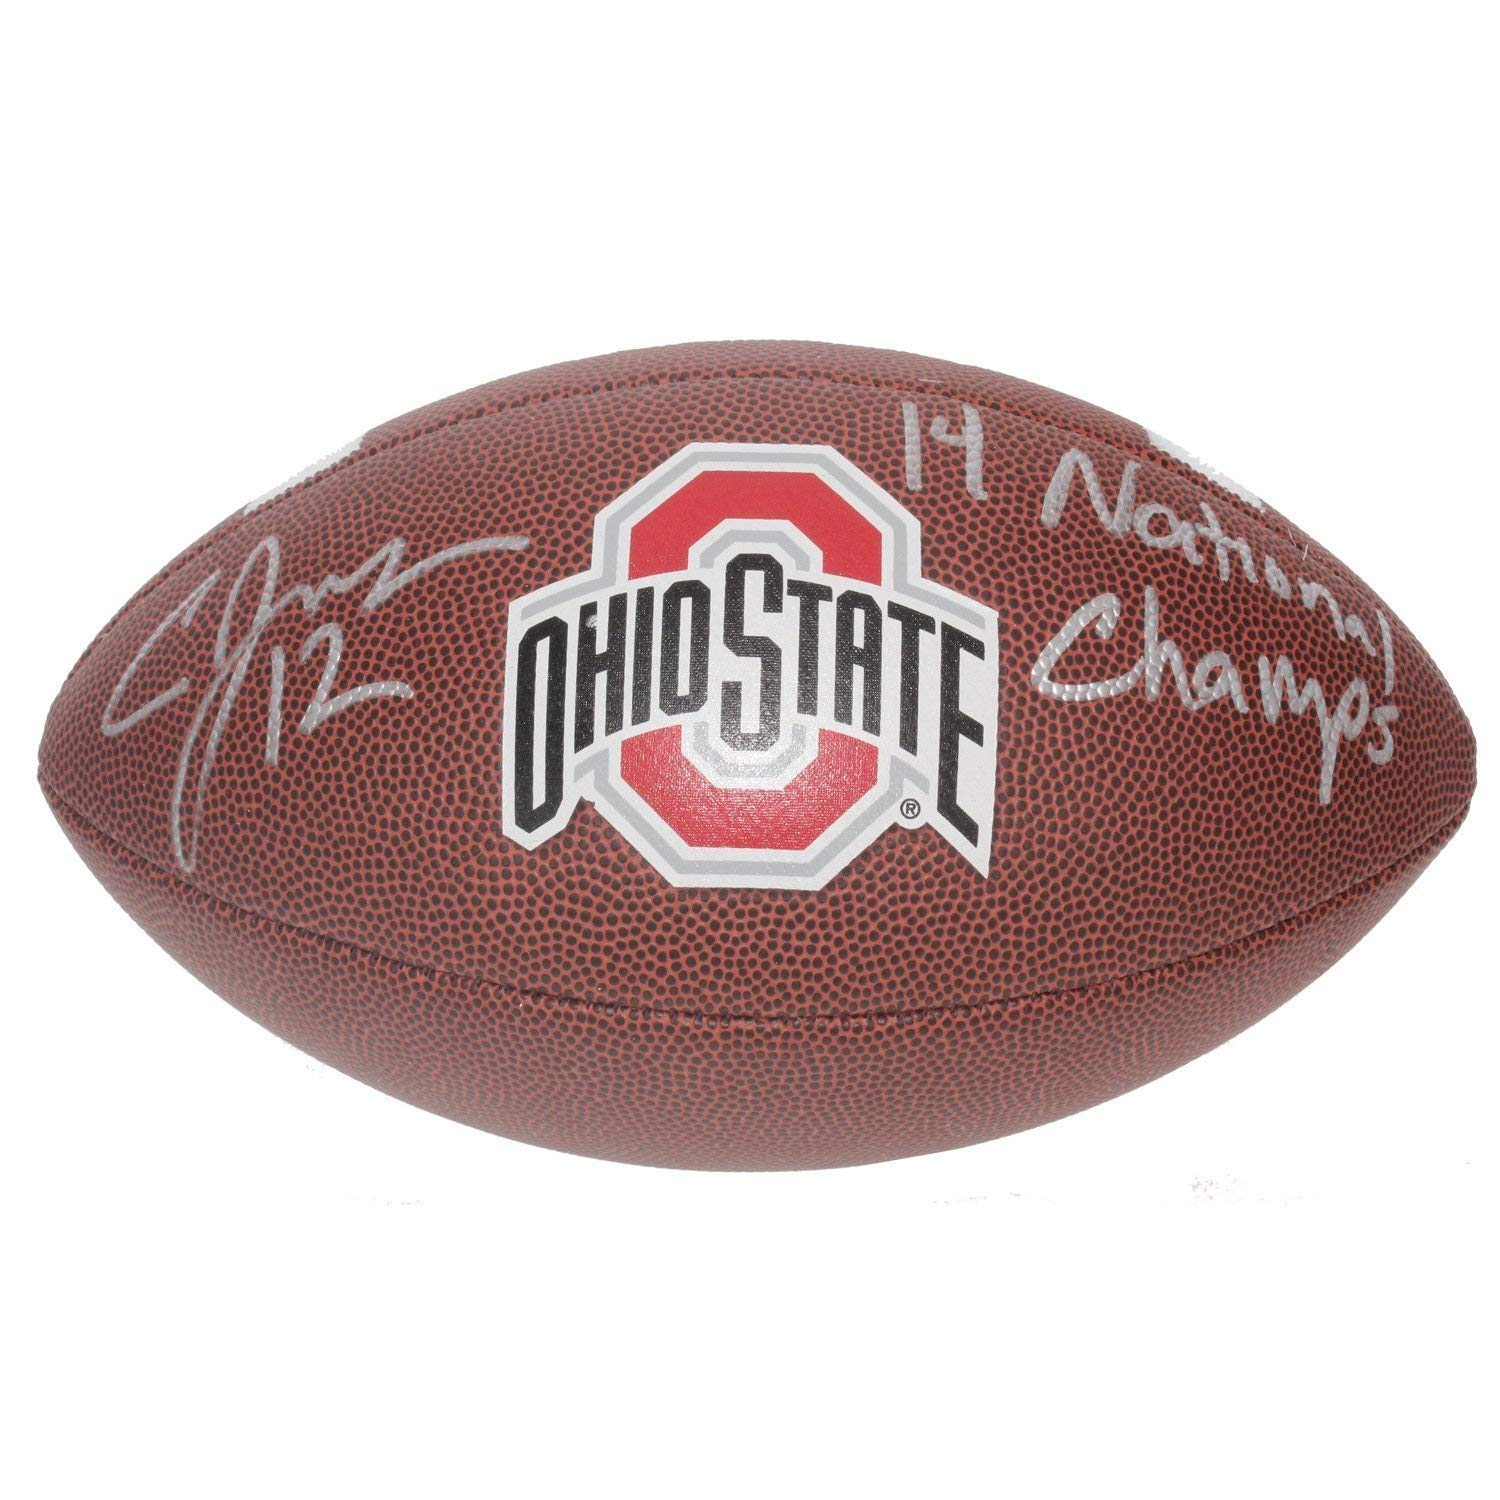 Cardale Jones Autographed Signed Ohio State Buckeyes Wilson Logo Football - 14 National Champs - Certified Authentic